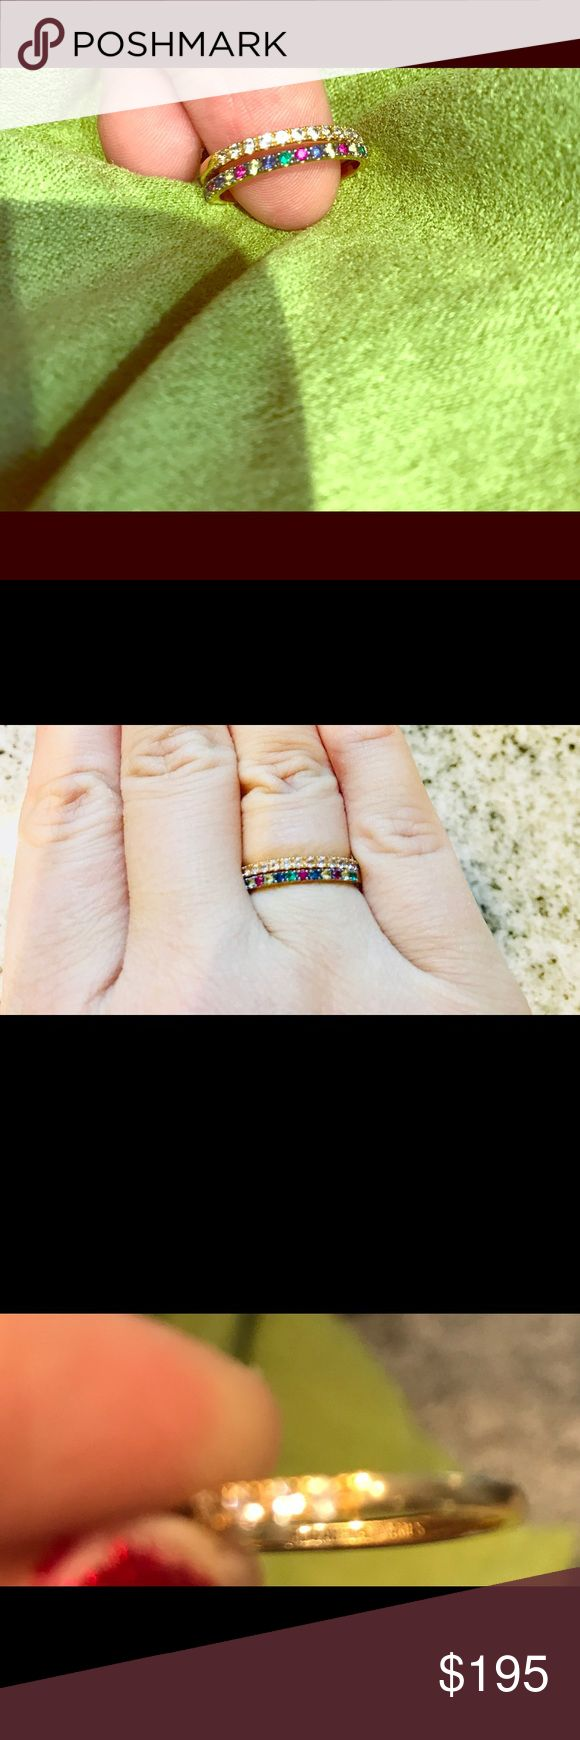 Elizabeth and James Sapphire & white topaz rings 100% authentic Elizabeth and James ring set. Yes, you get both! Can be worn separately or together. Gold plated with colored sapphires and the other is gold plated with white topaz stones. The size is about a 6-6.5. Worn once. Have very minor scratches on gold. Each ring has Elizabeth and James logo on inside of band. Elizabeth and James Jewelry Rings